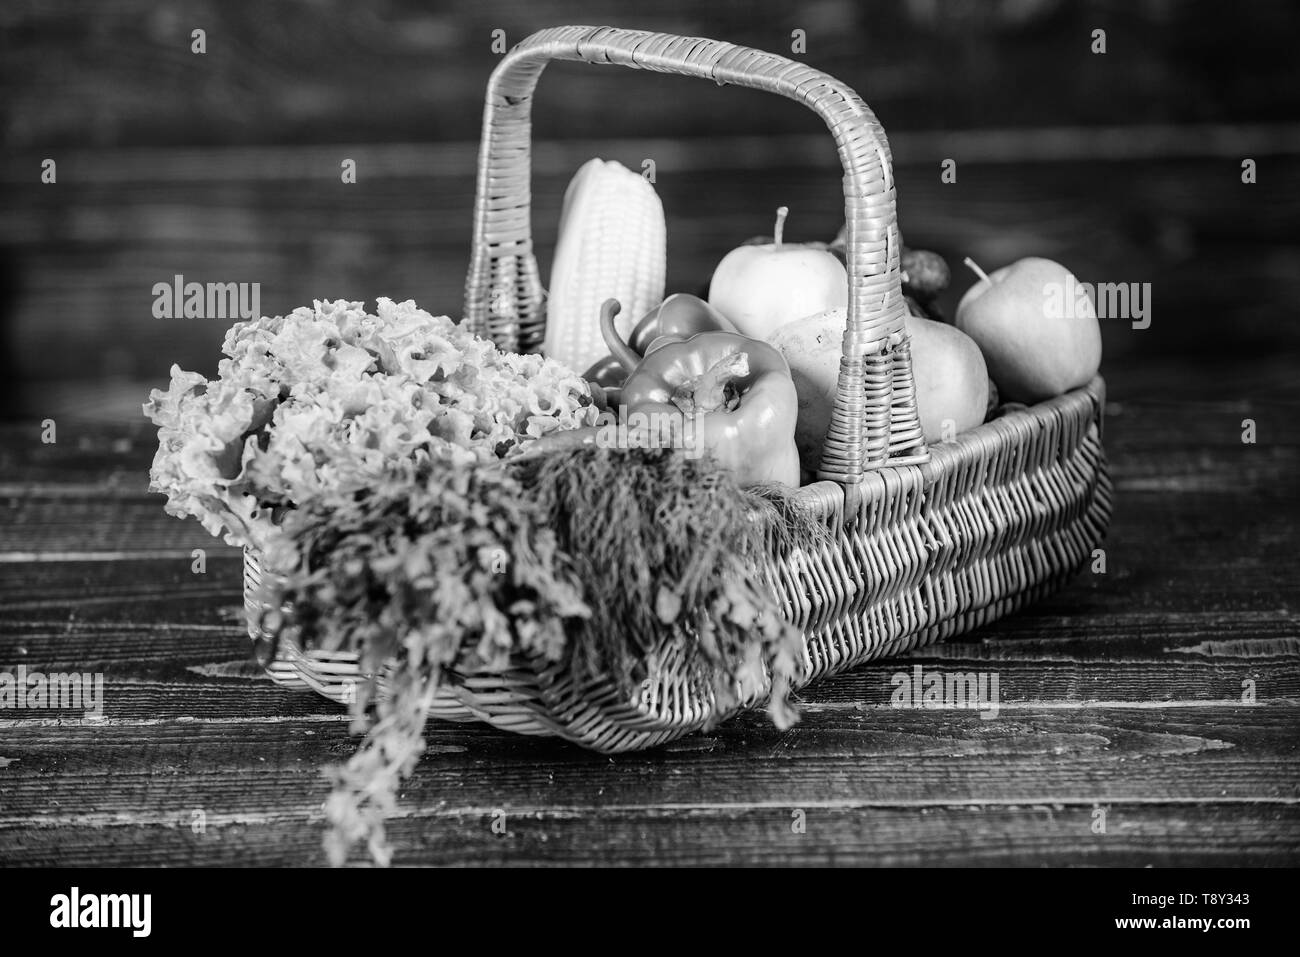 Homegrown vegetables. Fresh organic vegetables wicker basket. Fall harvest concept. Autumn harvest crops vegetables. Locally grown natural food. Farmers market. Vibrant and colorful vegetables. - Stock Image